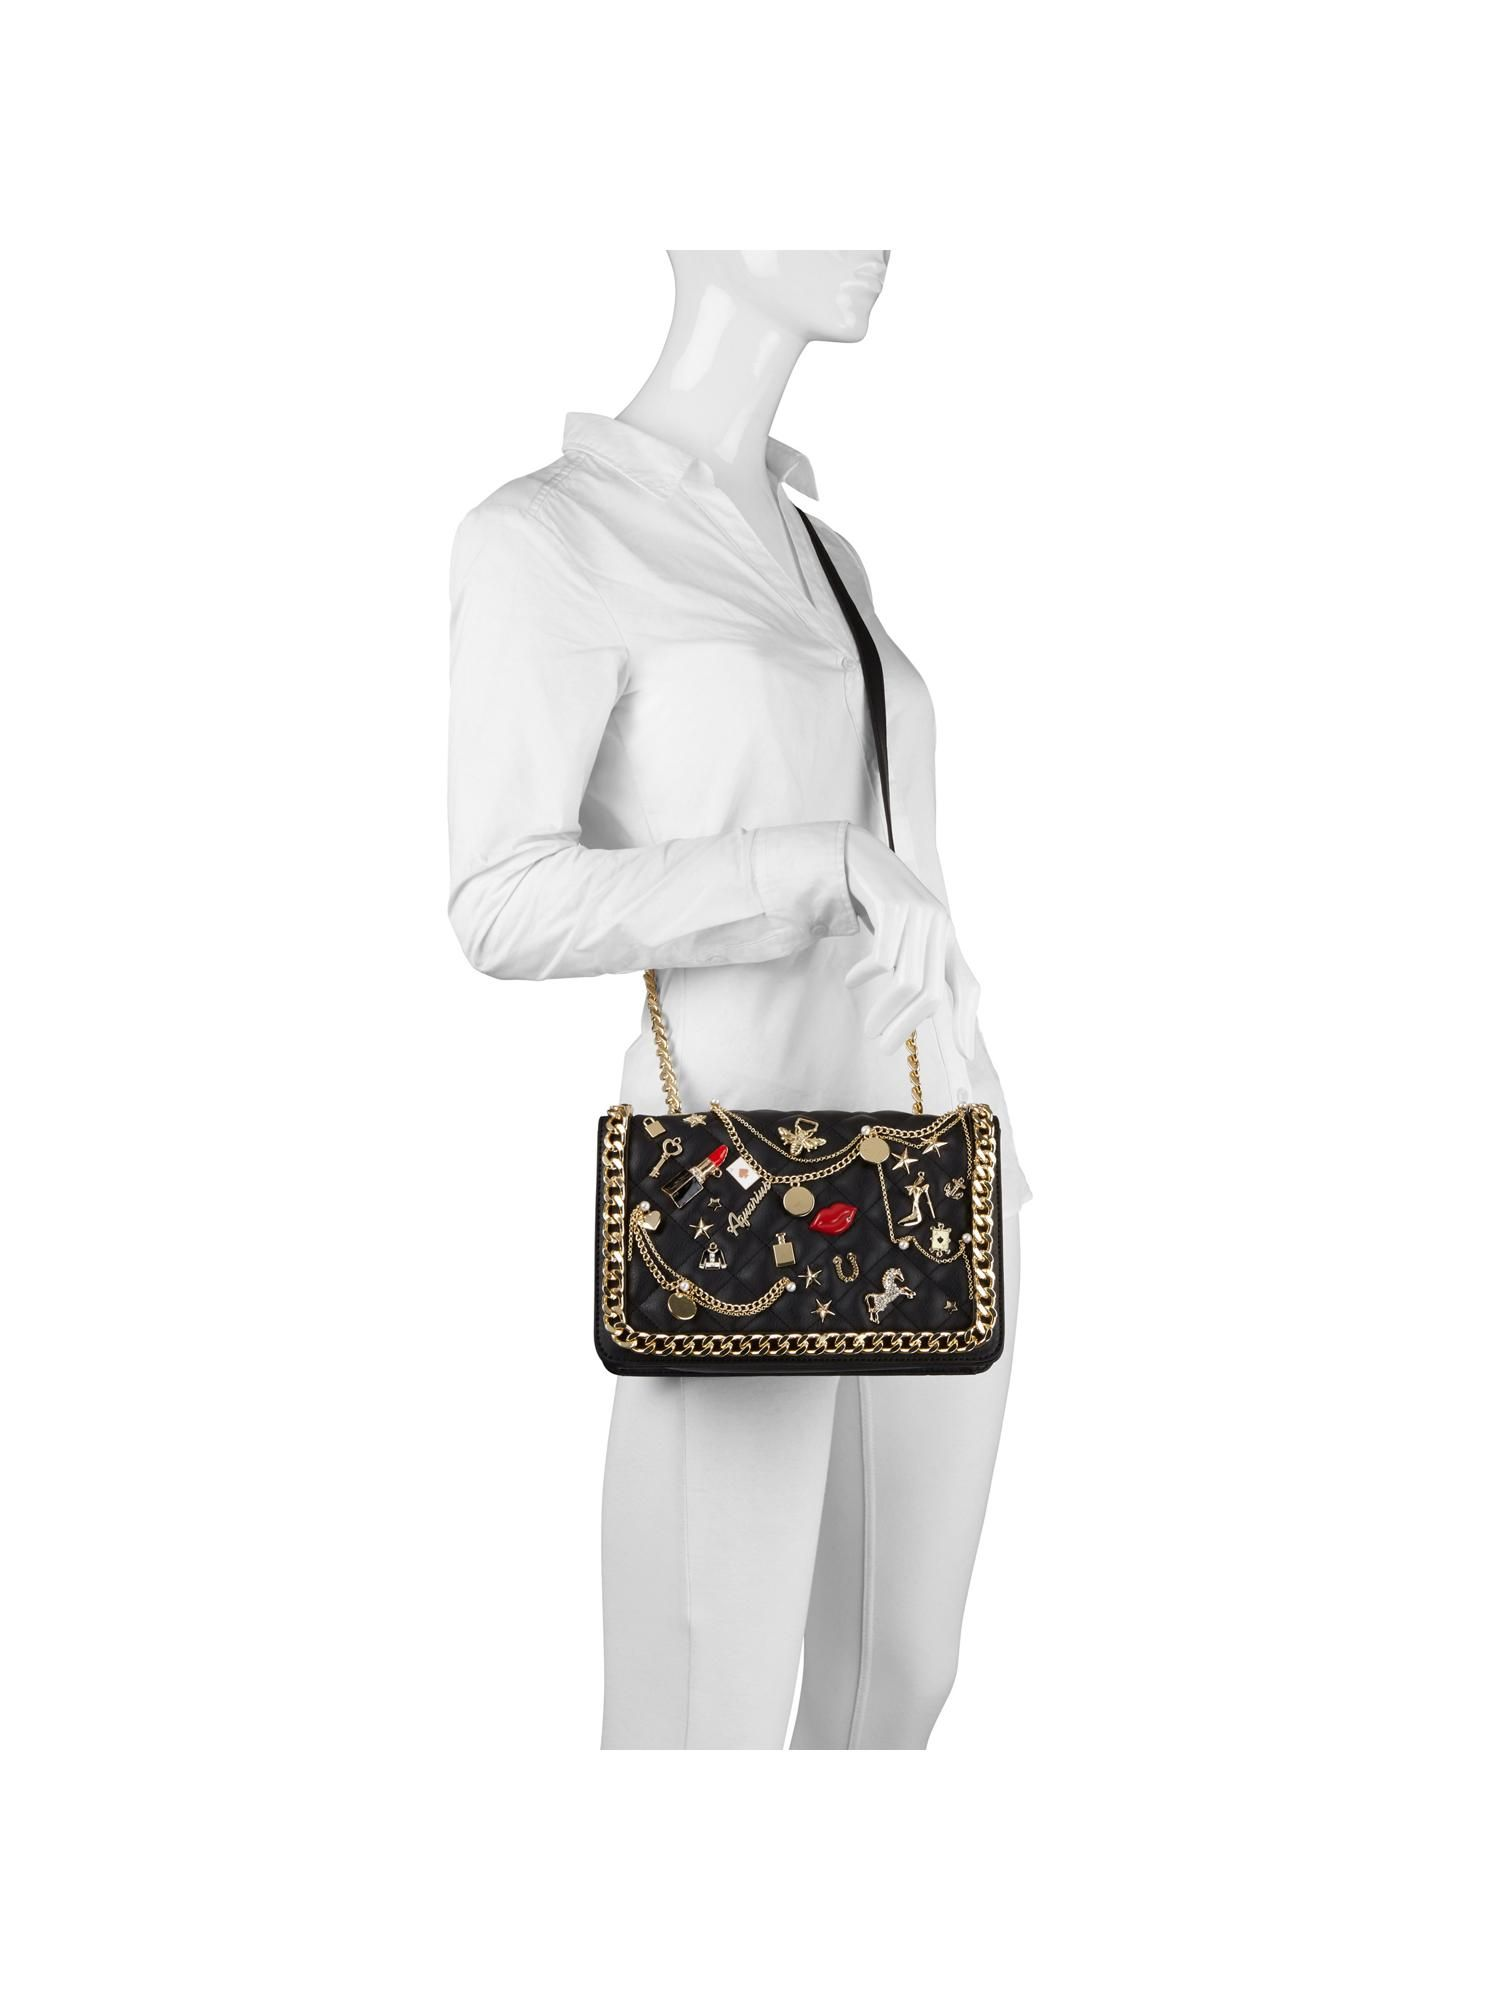 30098e08932 Buy your Aldo Lousana Cross Body Bag With Charms online now at House of  Fraser. Why not Buy and Collect in-store